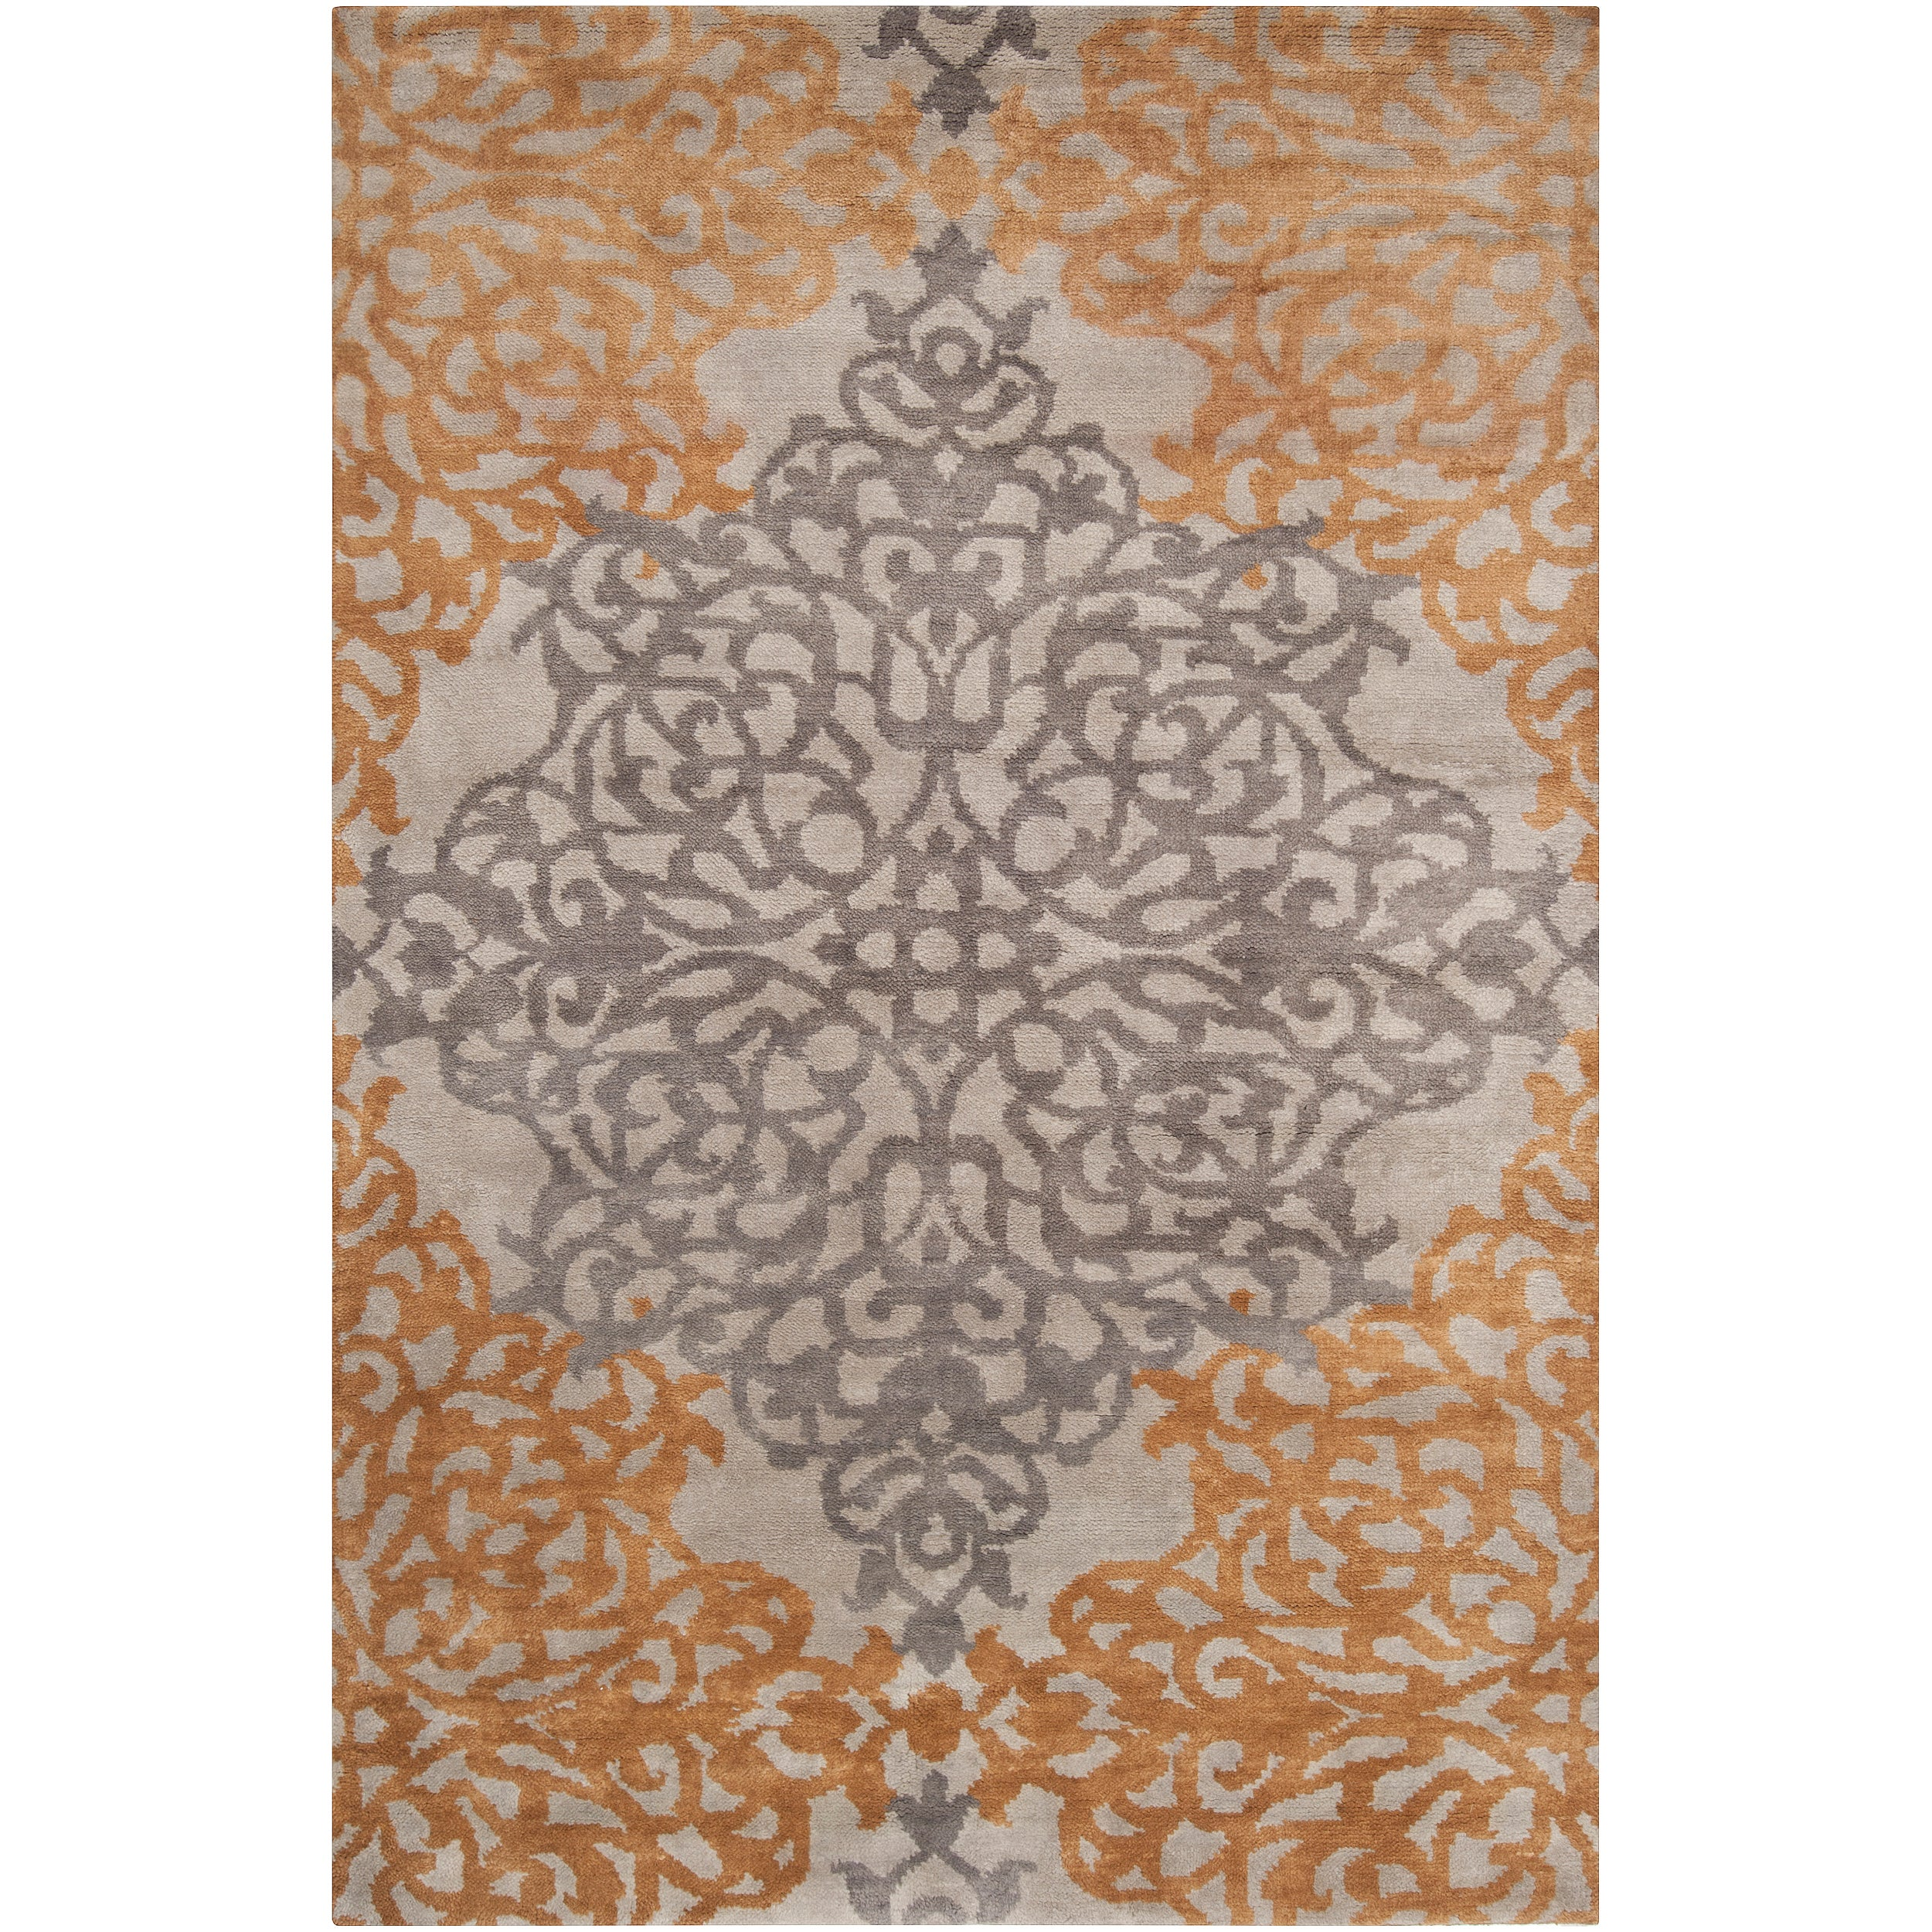 Hand-knotted Gray Castle New Zealand Wool Rug (3'9 x 5'9)...